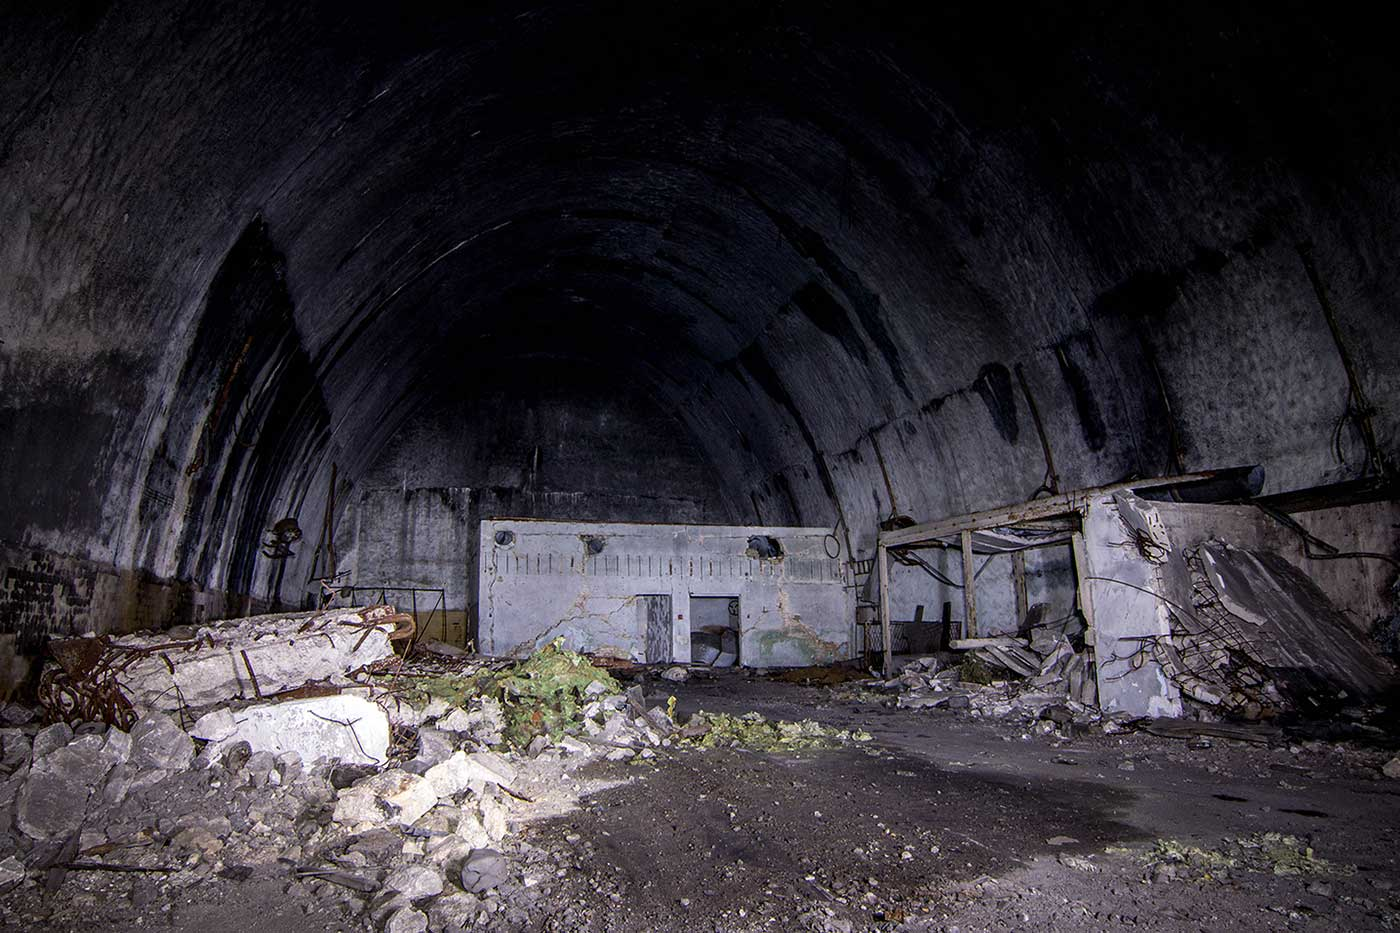 The first chamber inside Entrance 2 of the 'KLEK' complex at Željava Airbase. The door frames set into the far block give an idea of scale.